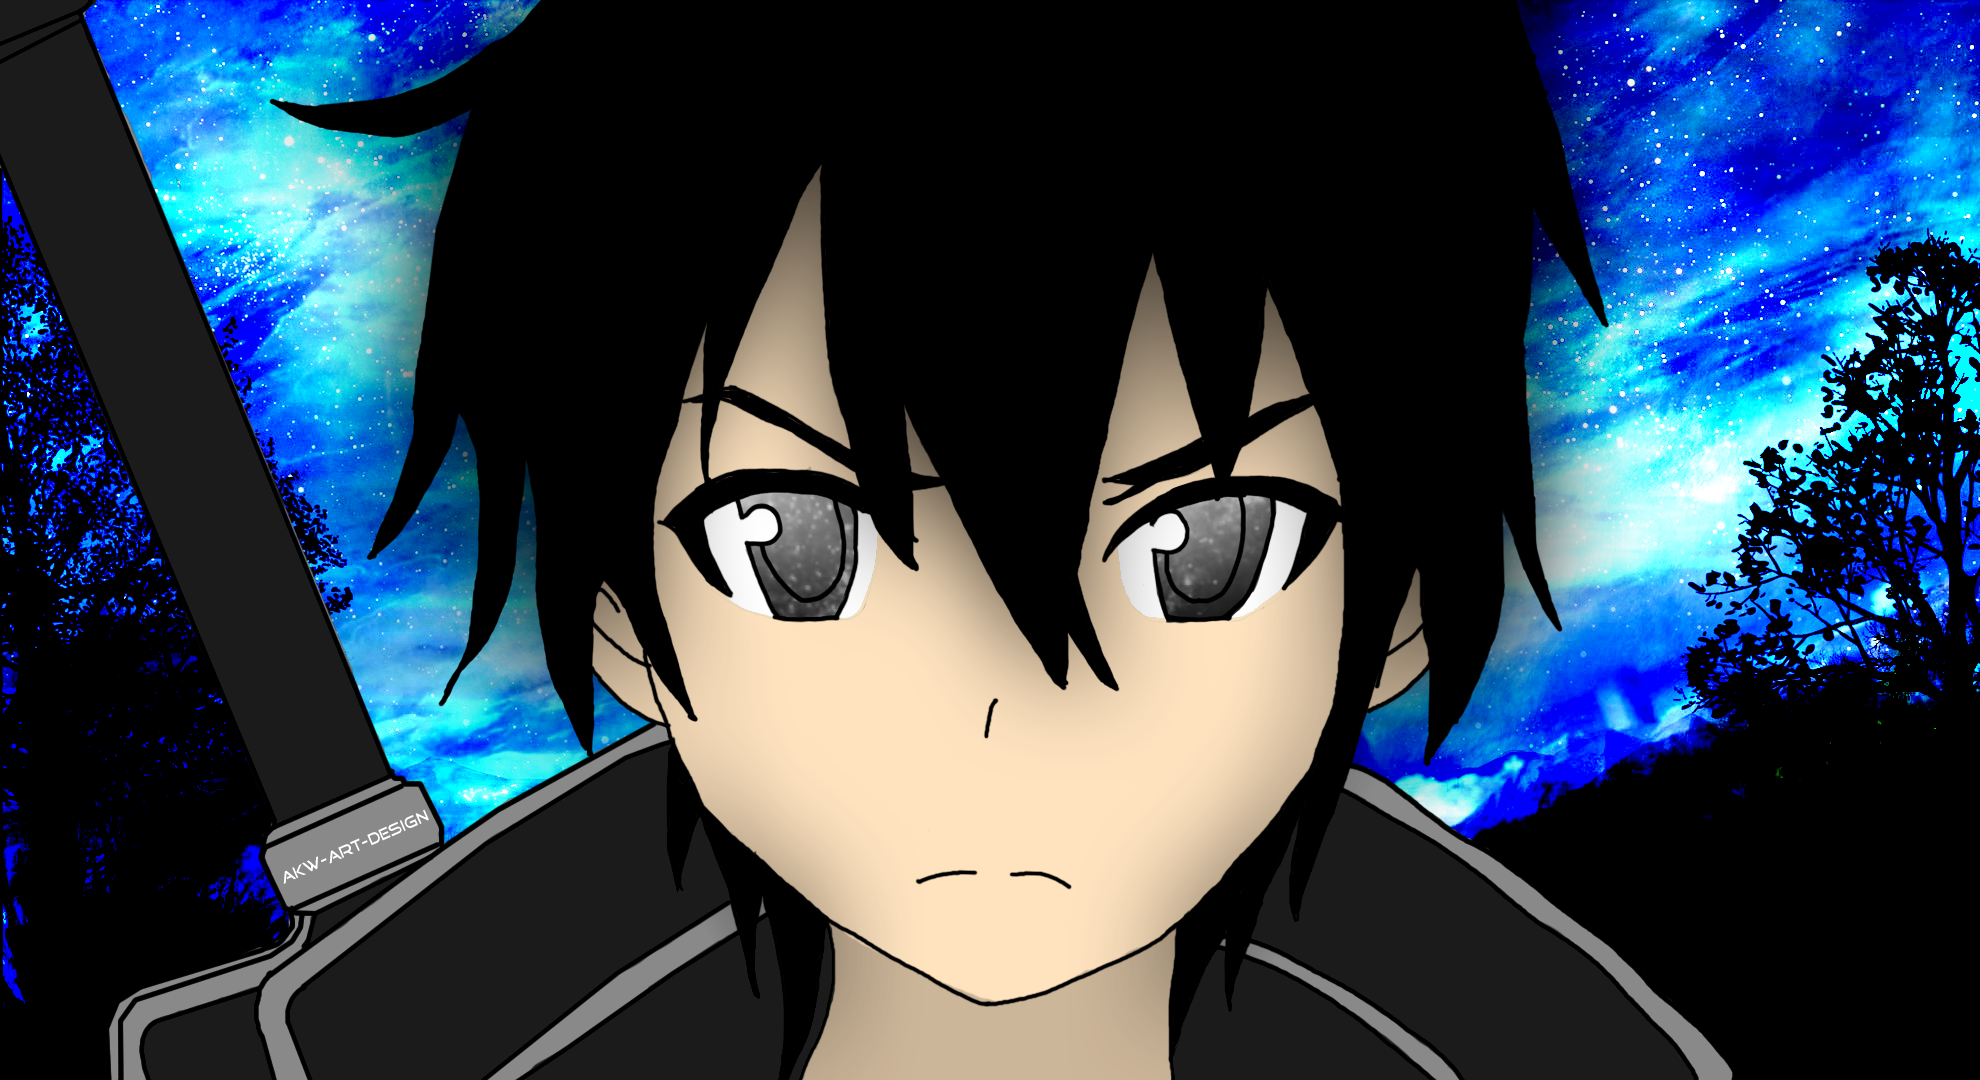 Sword Art Online - Kirito colored by Akw-Art-Design